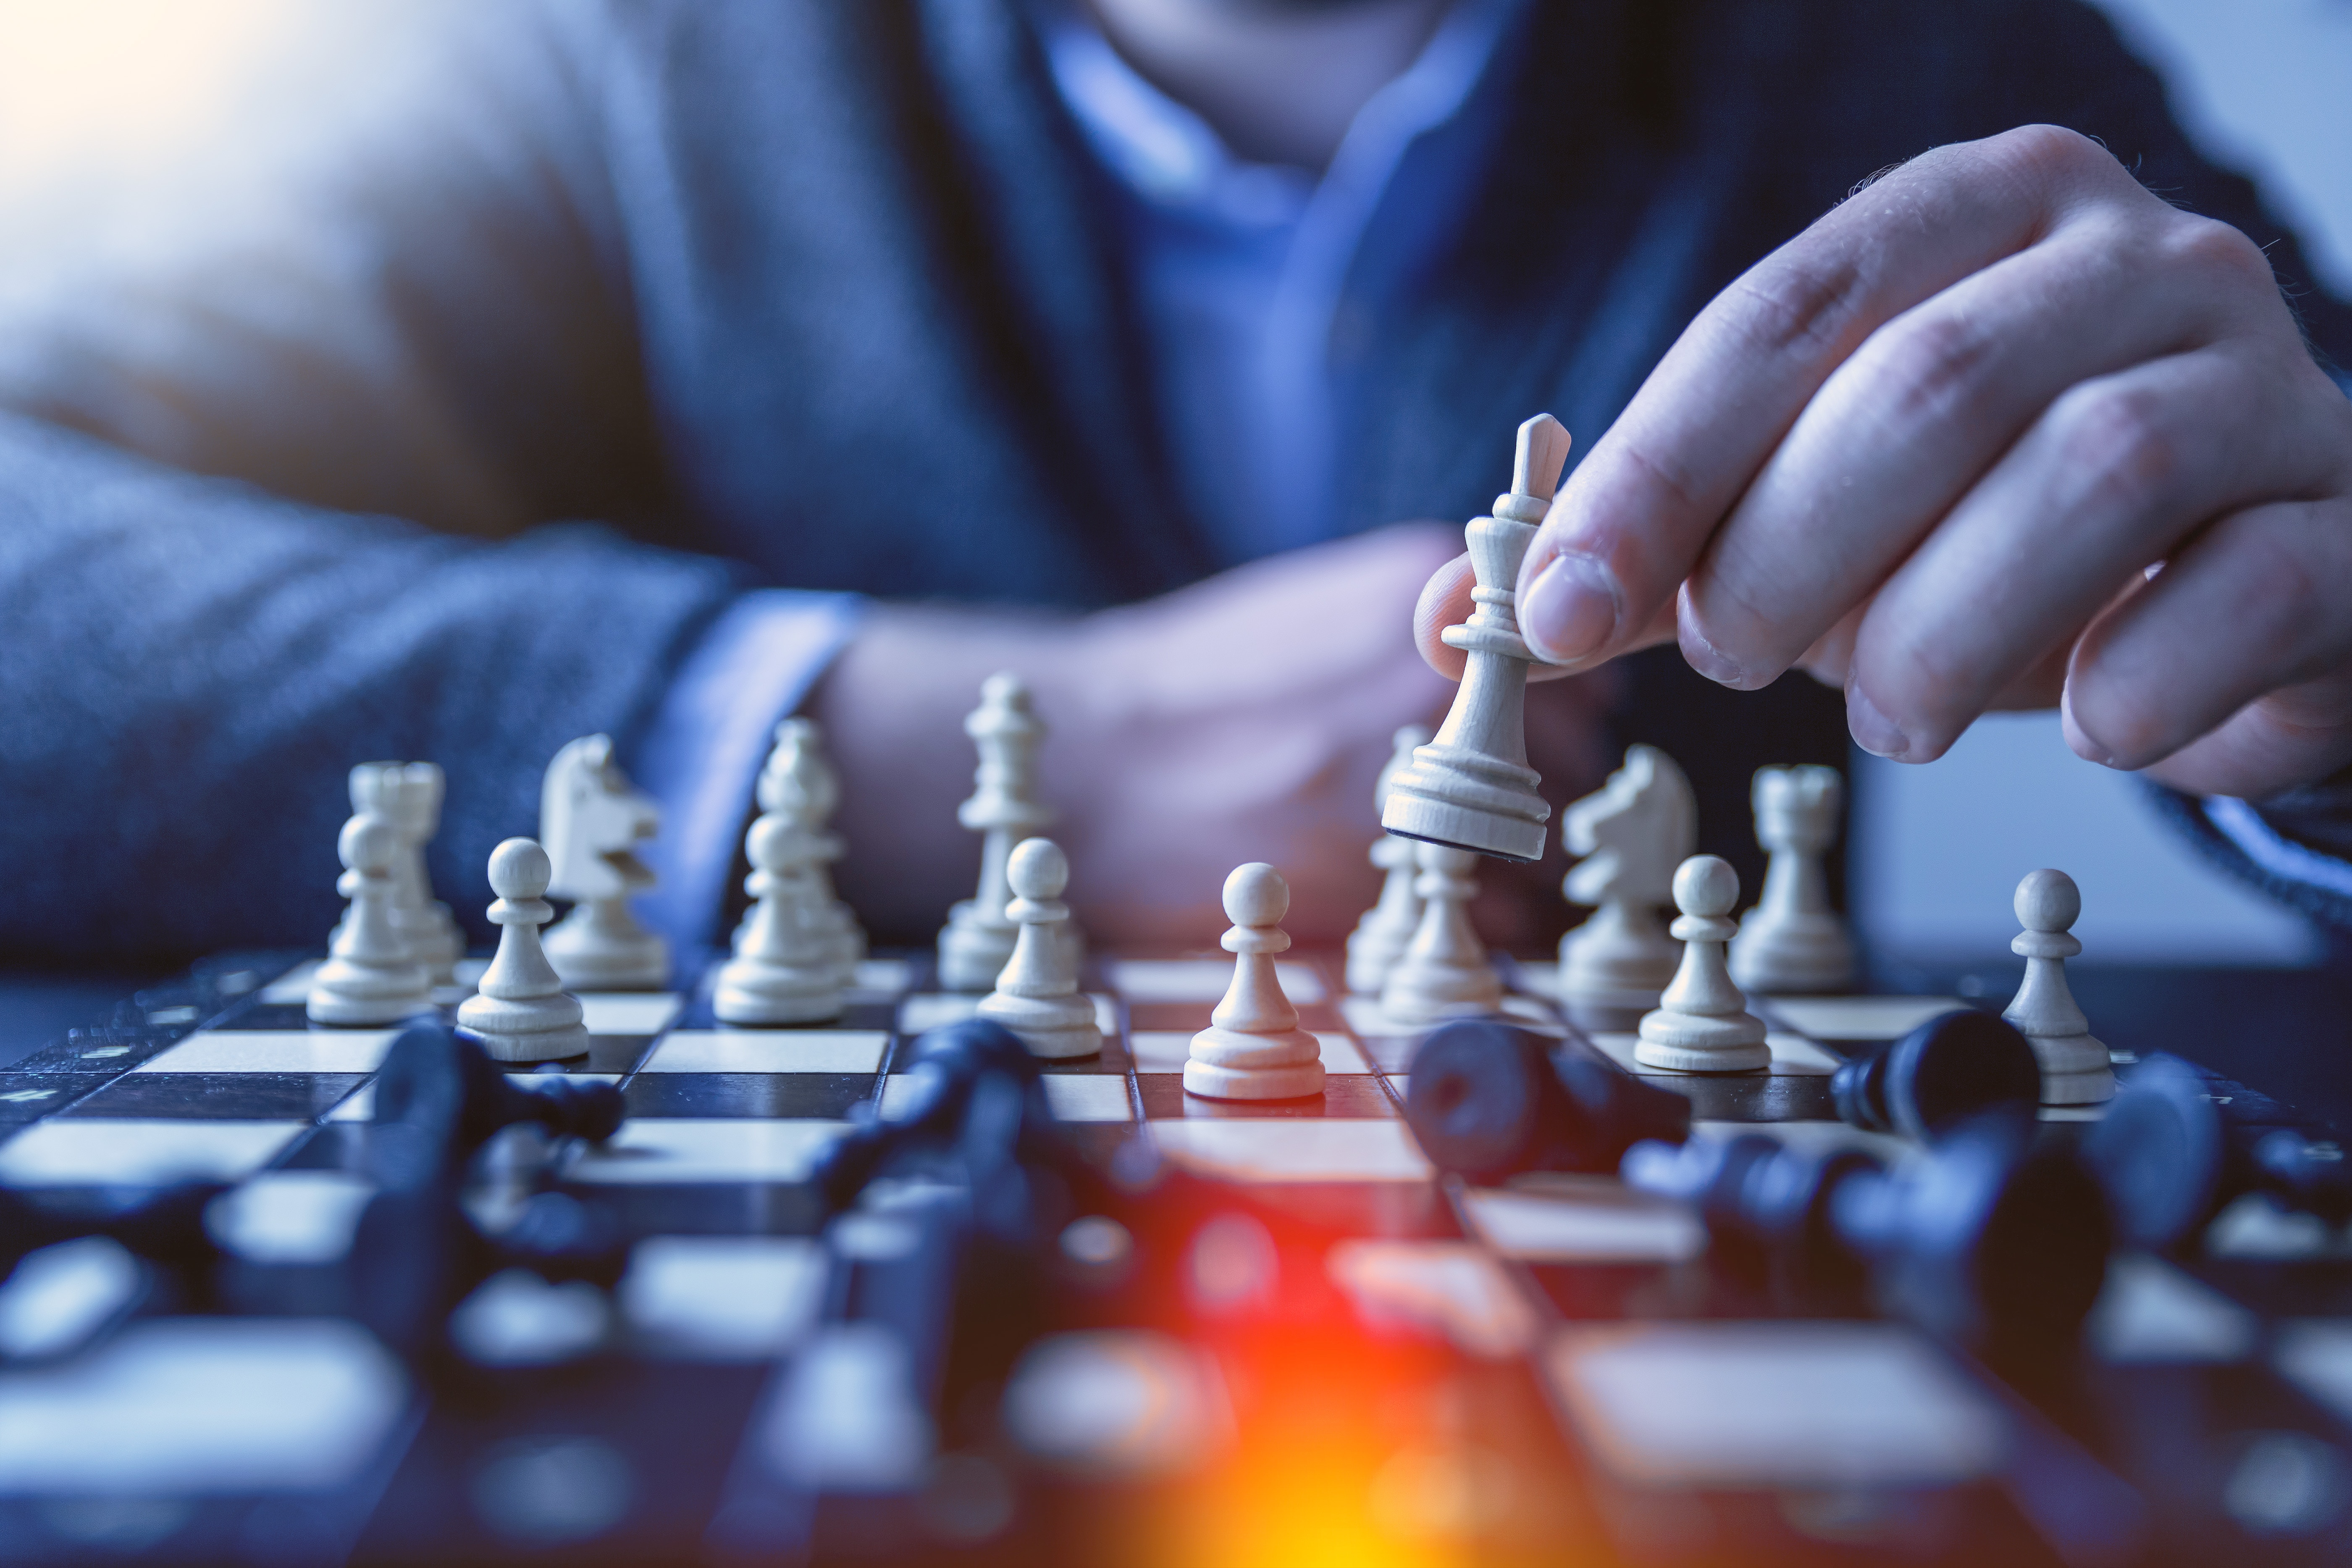 When and why is Company Building a good strategic option?